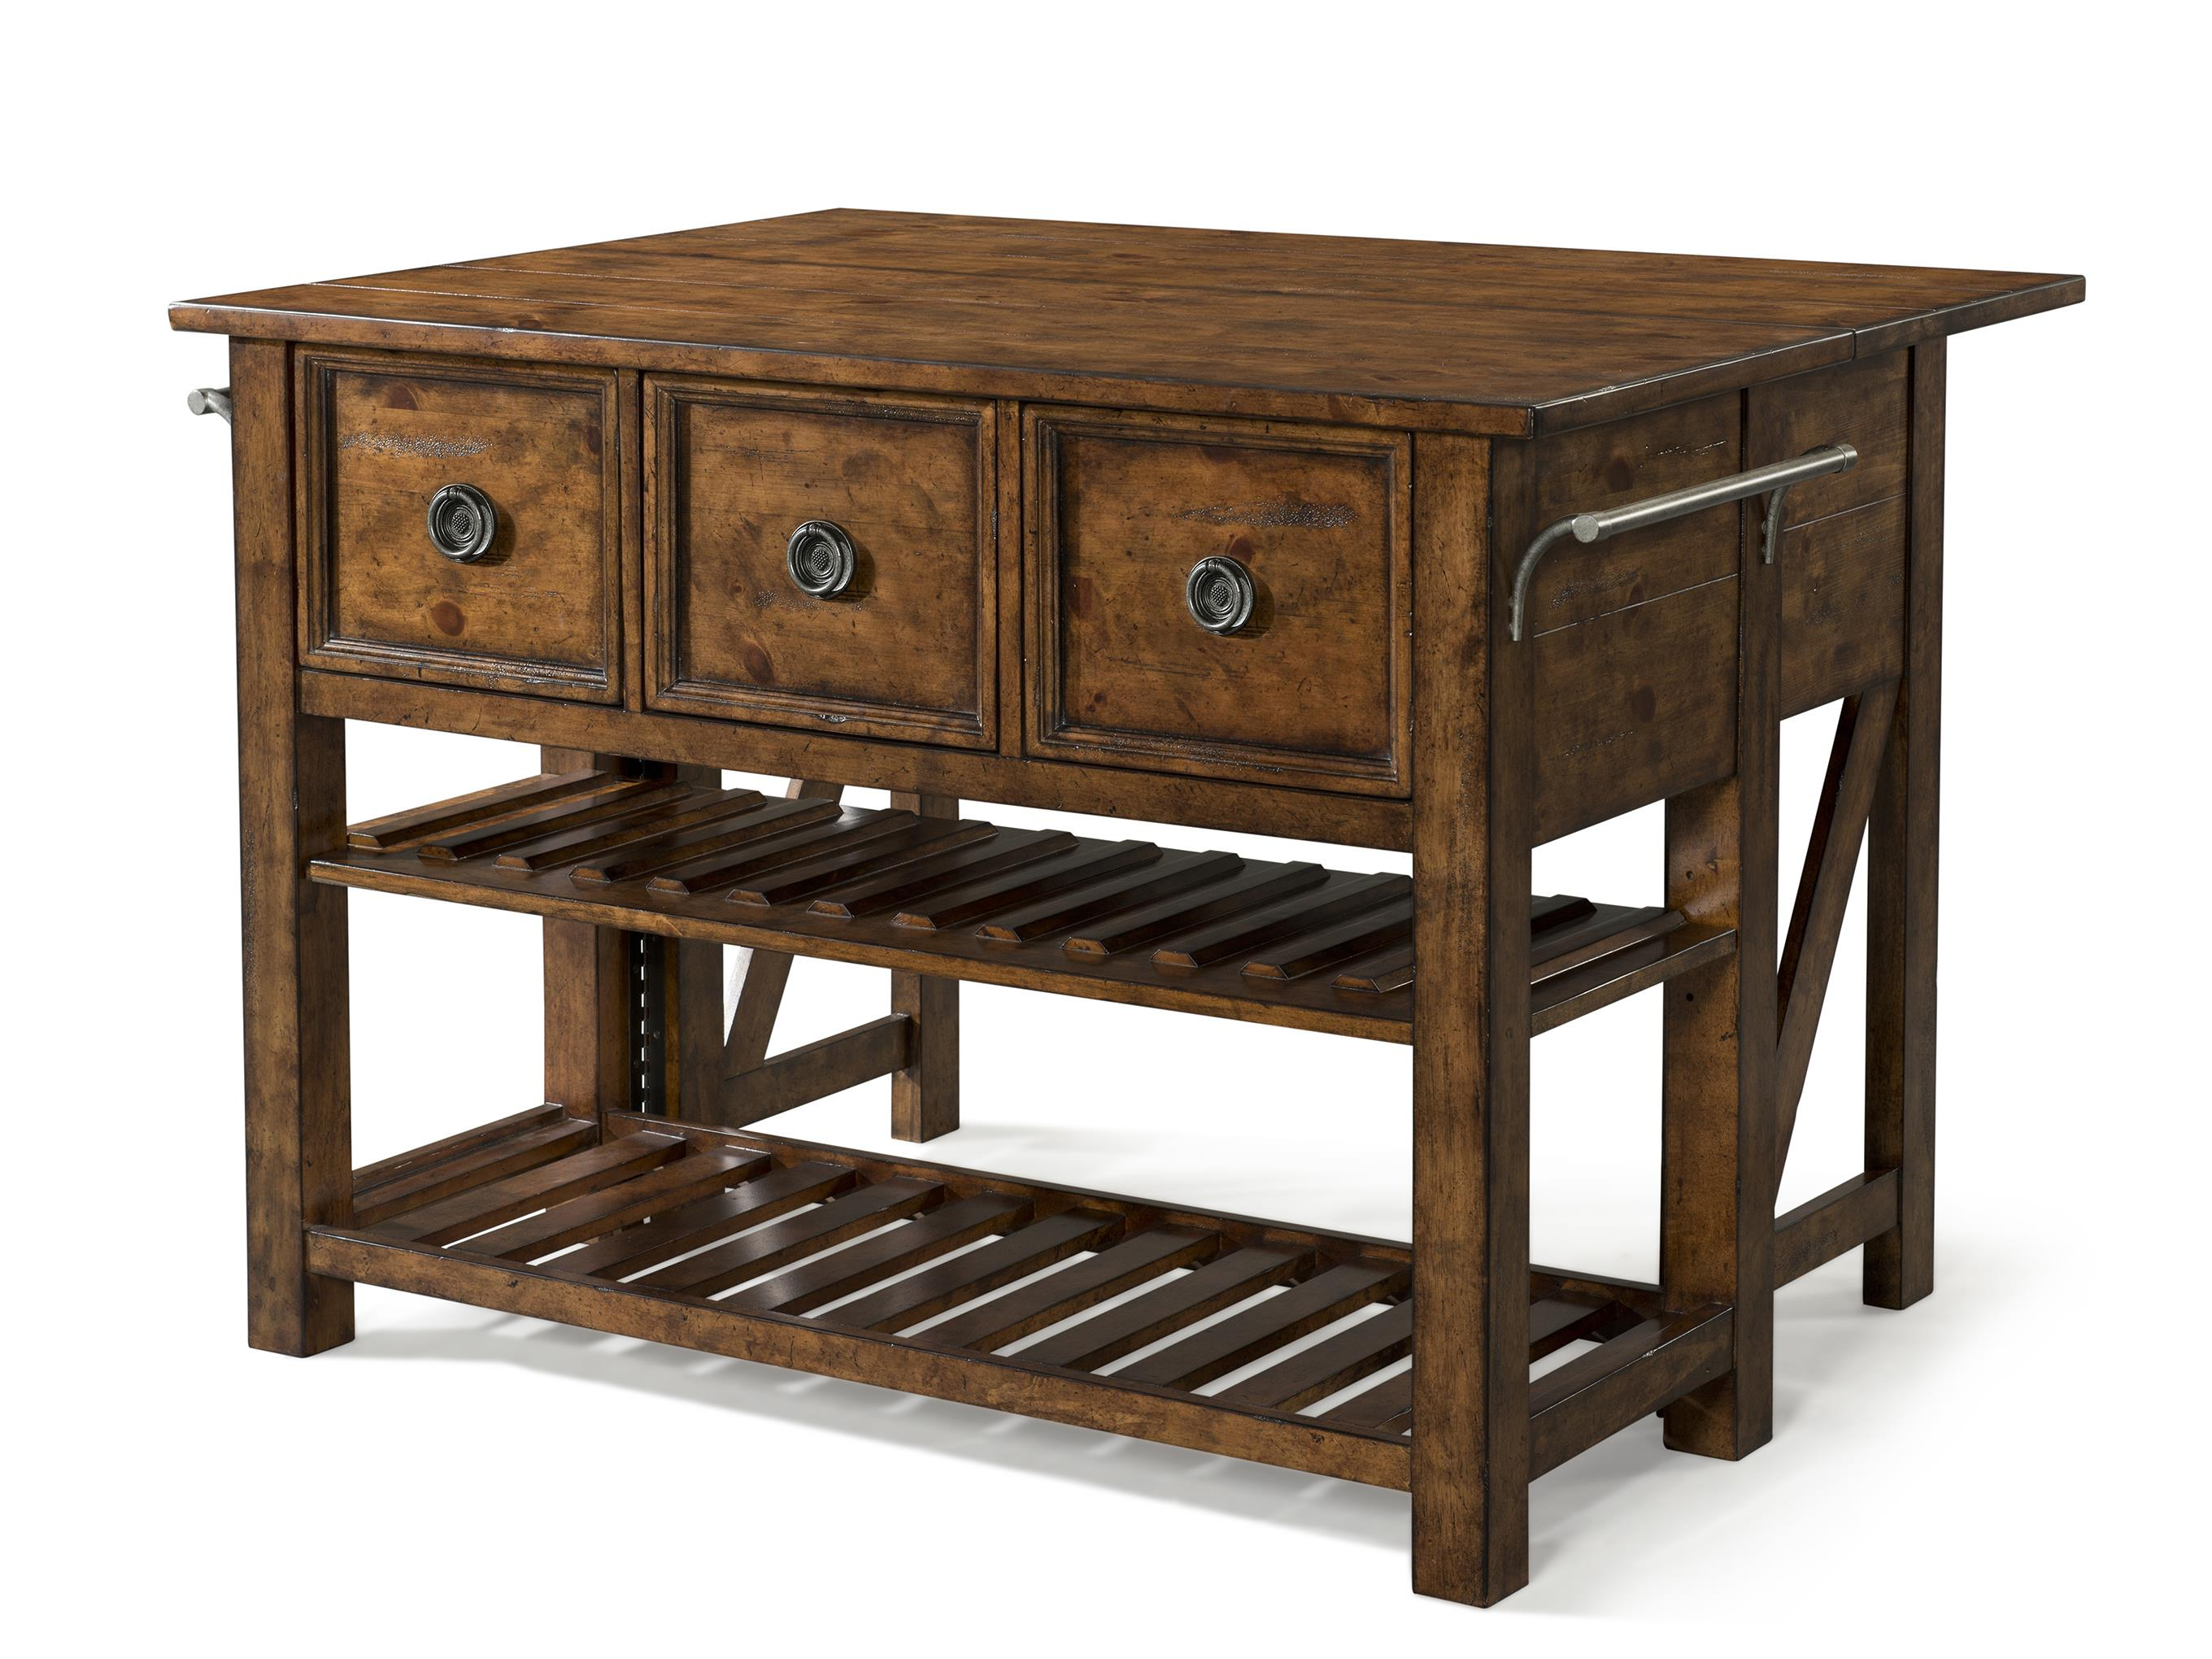 Easton Collection Farmhouse Loblolly Kitchen Island - Item Number: 436-885 ISLAN